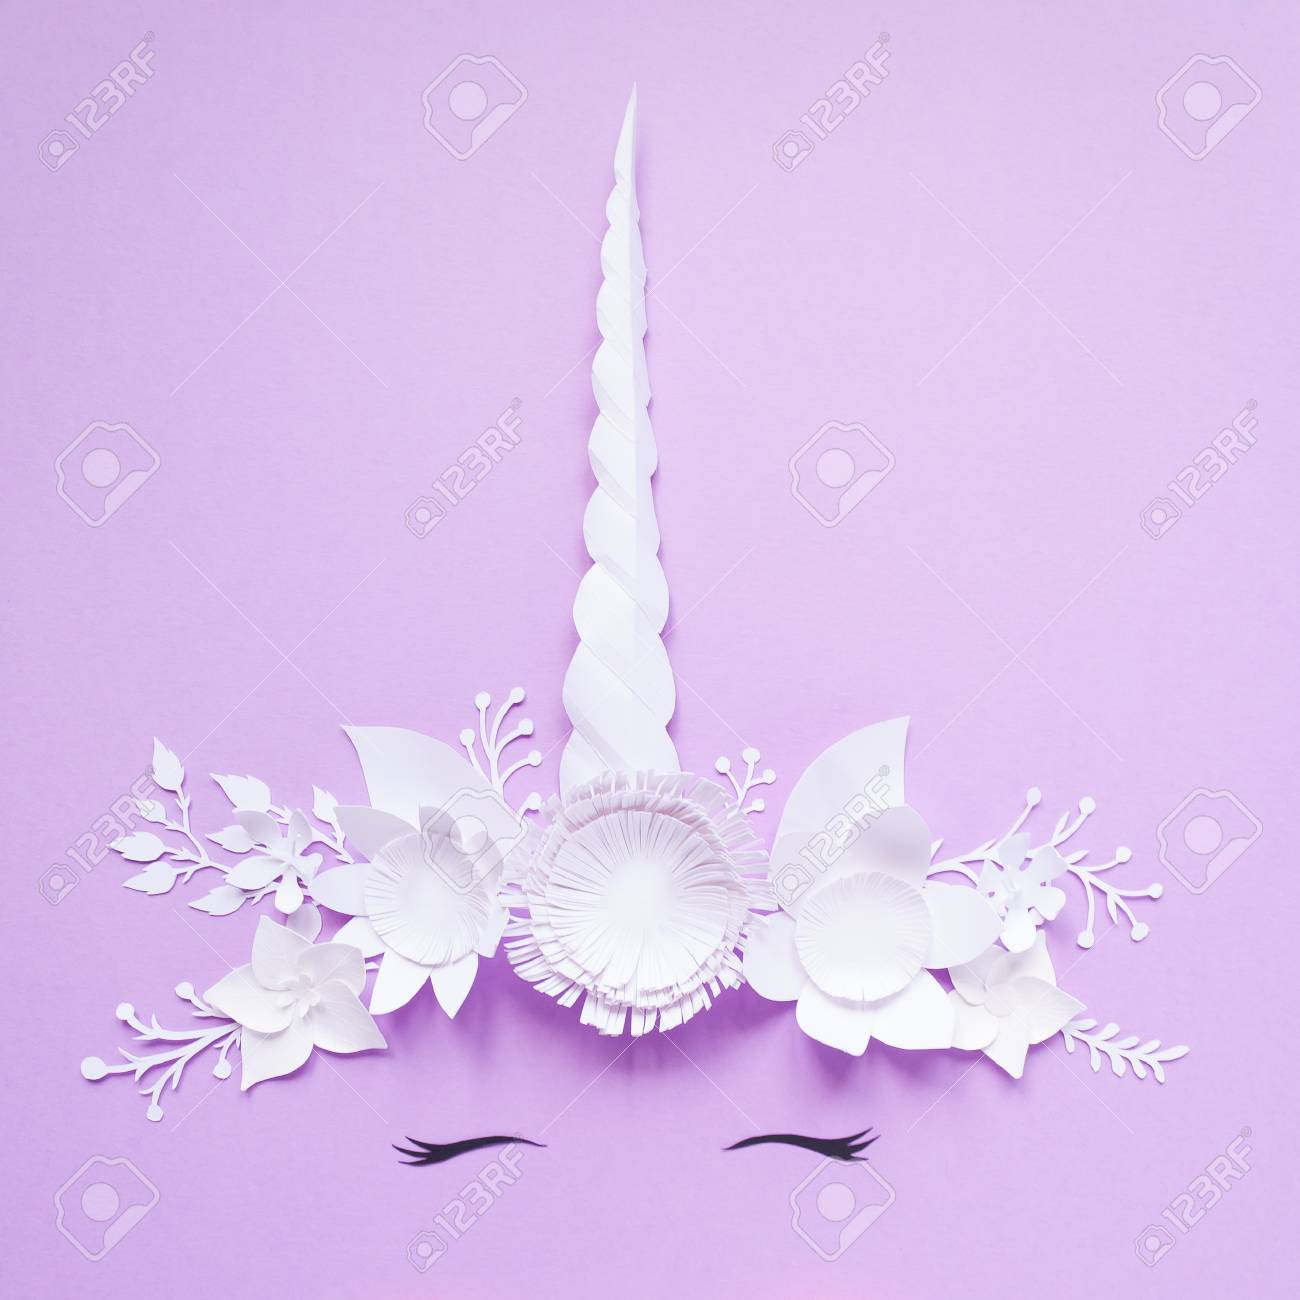 Cute Unicorn Made Of White Paper Flowers On Violet Background Cut